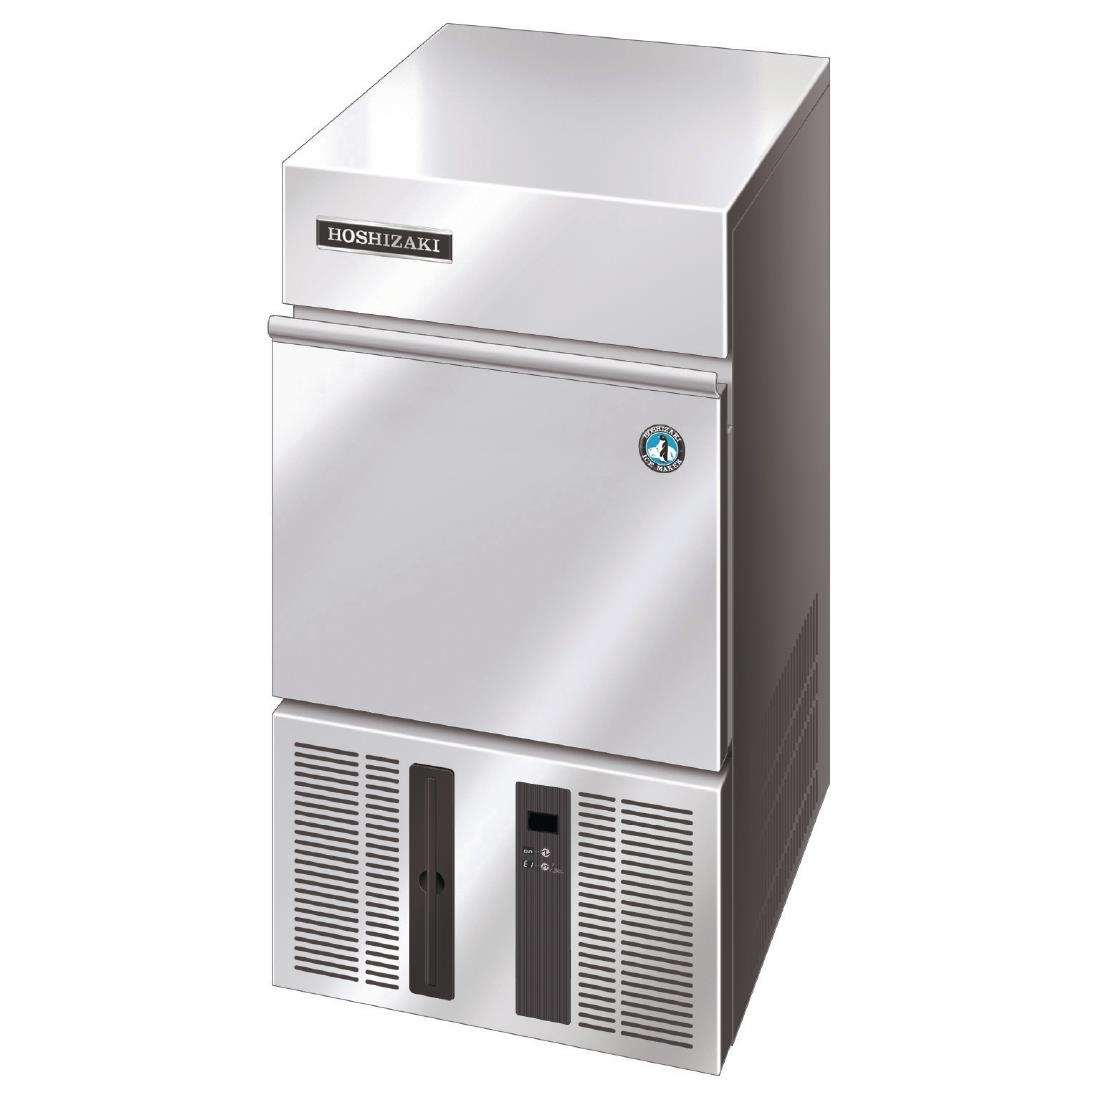 Image of Hoshizaki Air-Cooled Compact Ice Maker 22kg/24hr Output IM-21CNE